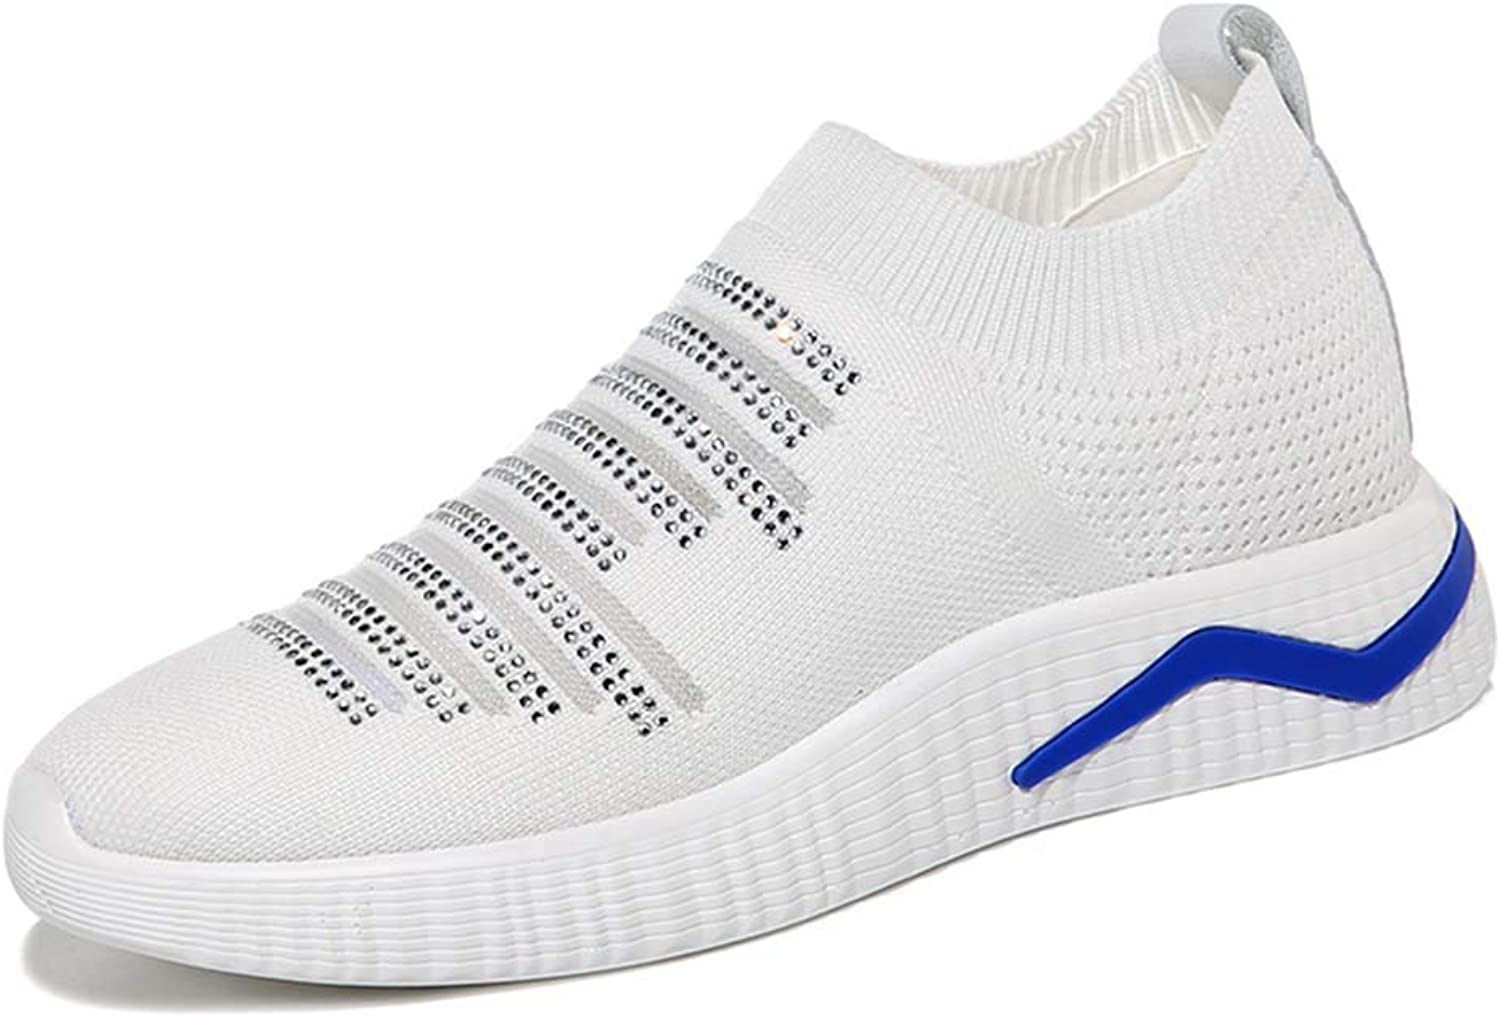 Women's Spring Fashion Small White shoes, Soft and Comfortable Breathable Lazy Casual shoes